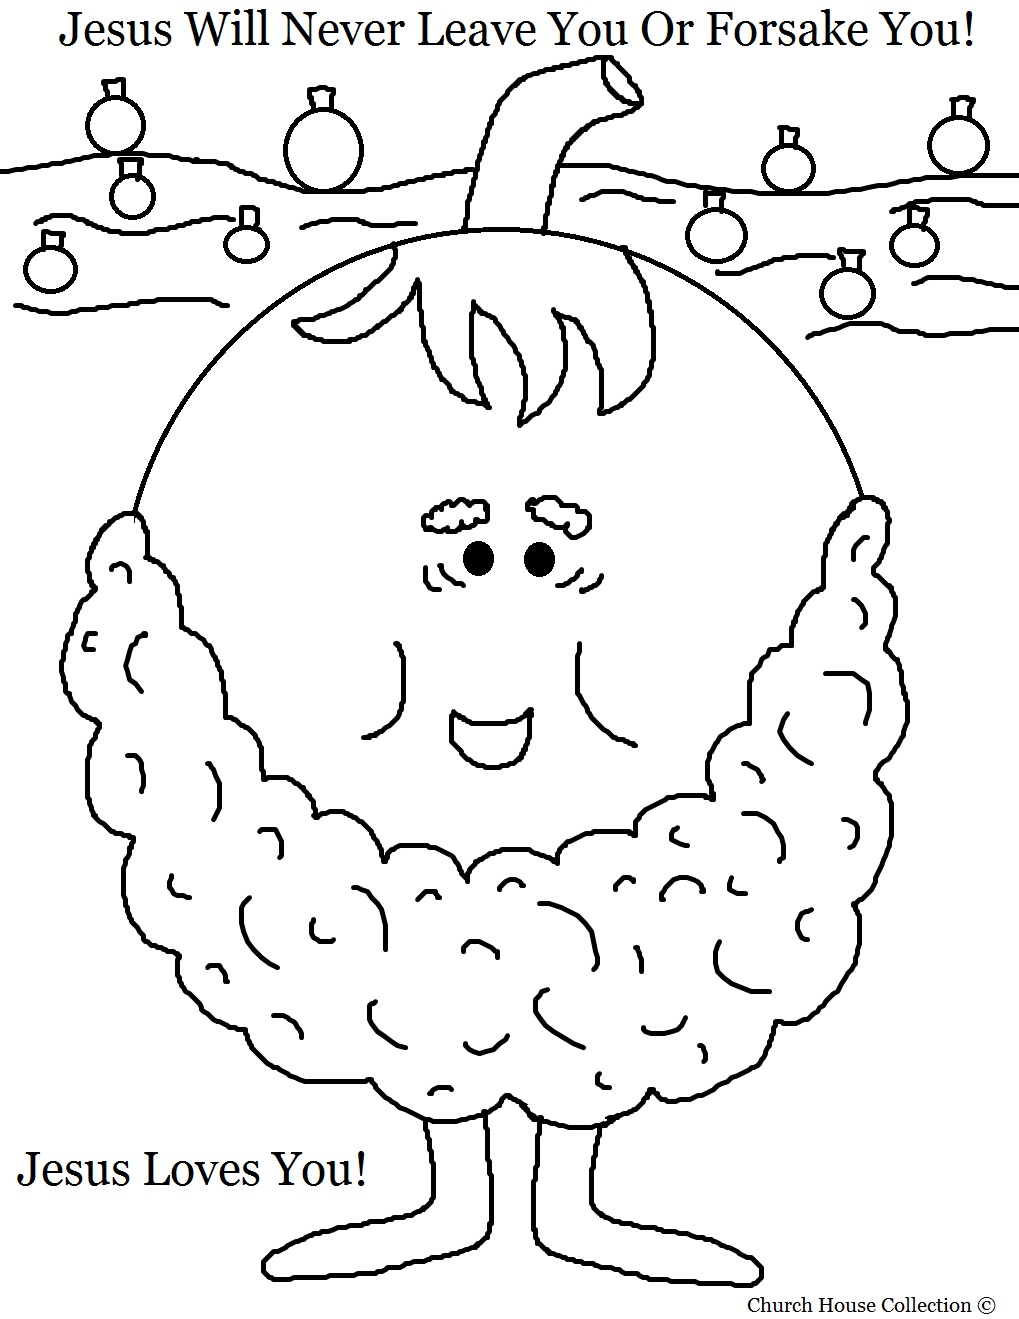 Coloring pages for sunday school - Printables Coloring Pages For Sunday School Ity Cove